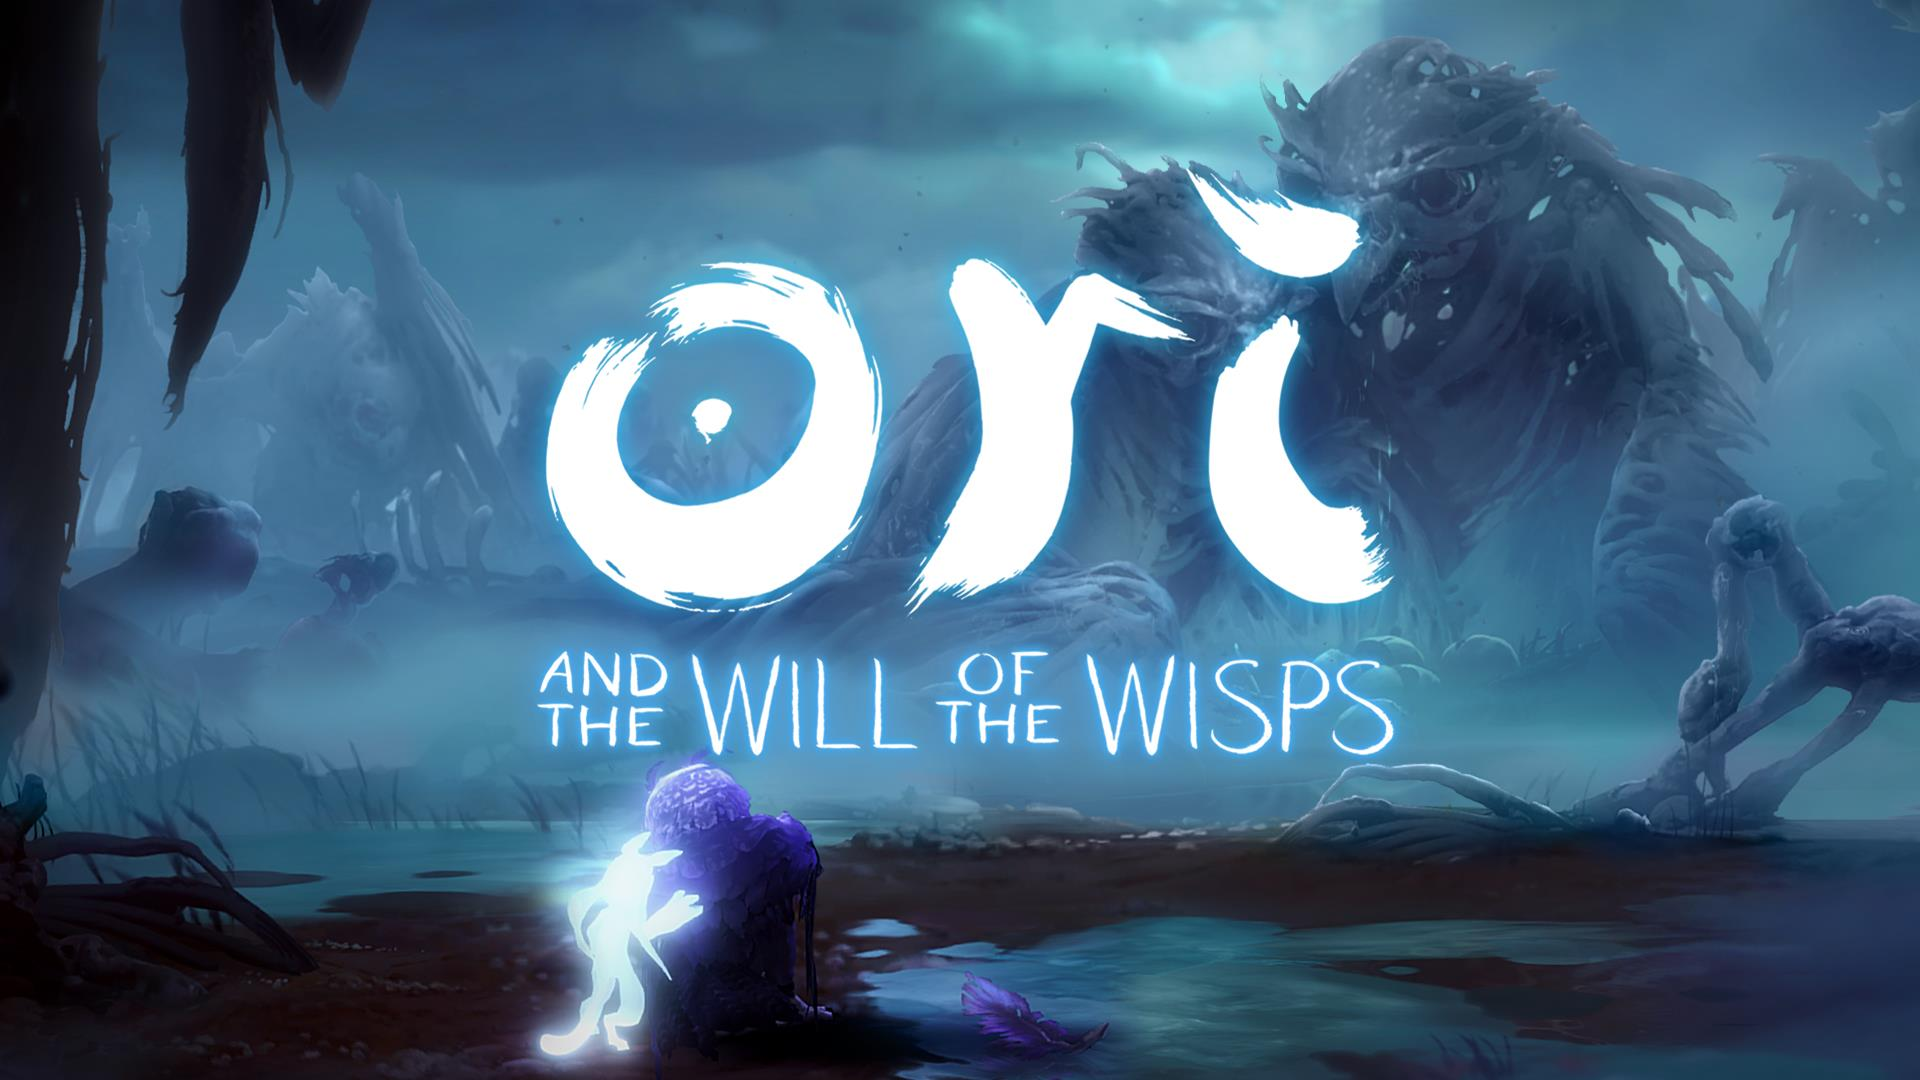 ori-and-the-will-of-the-wisps-video-game-wallpaper-62049-63962-hd-wallpapers.jpg